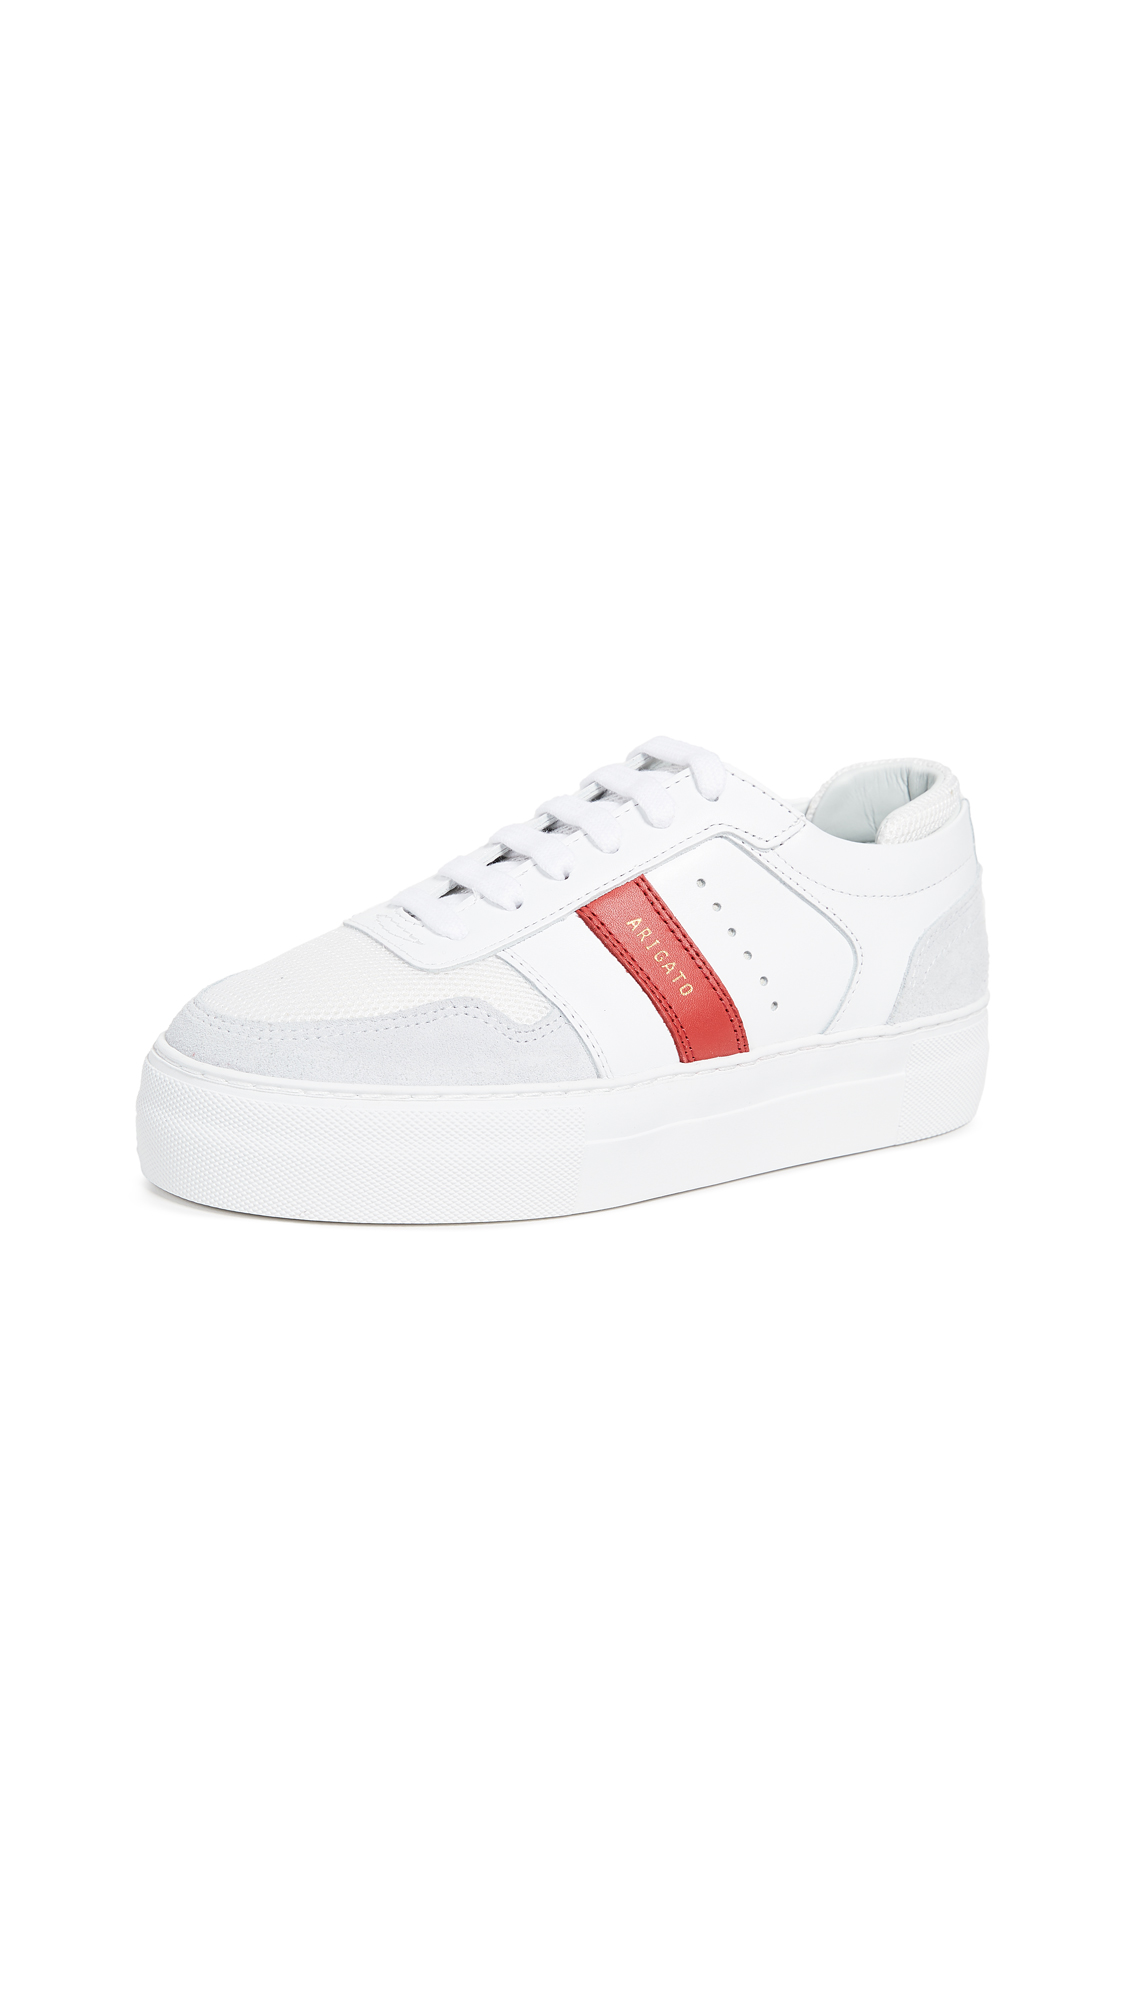 Axel Arigato Platform Detailed Sneakers - White/Red